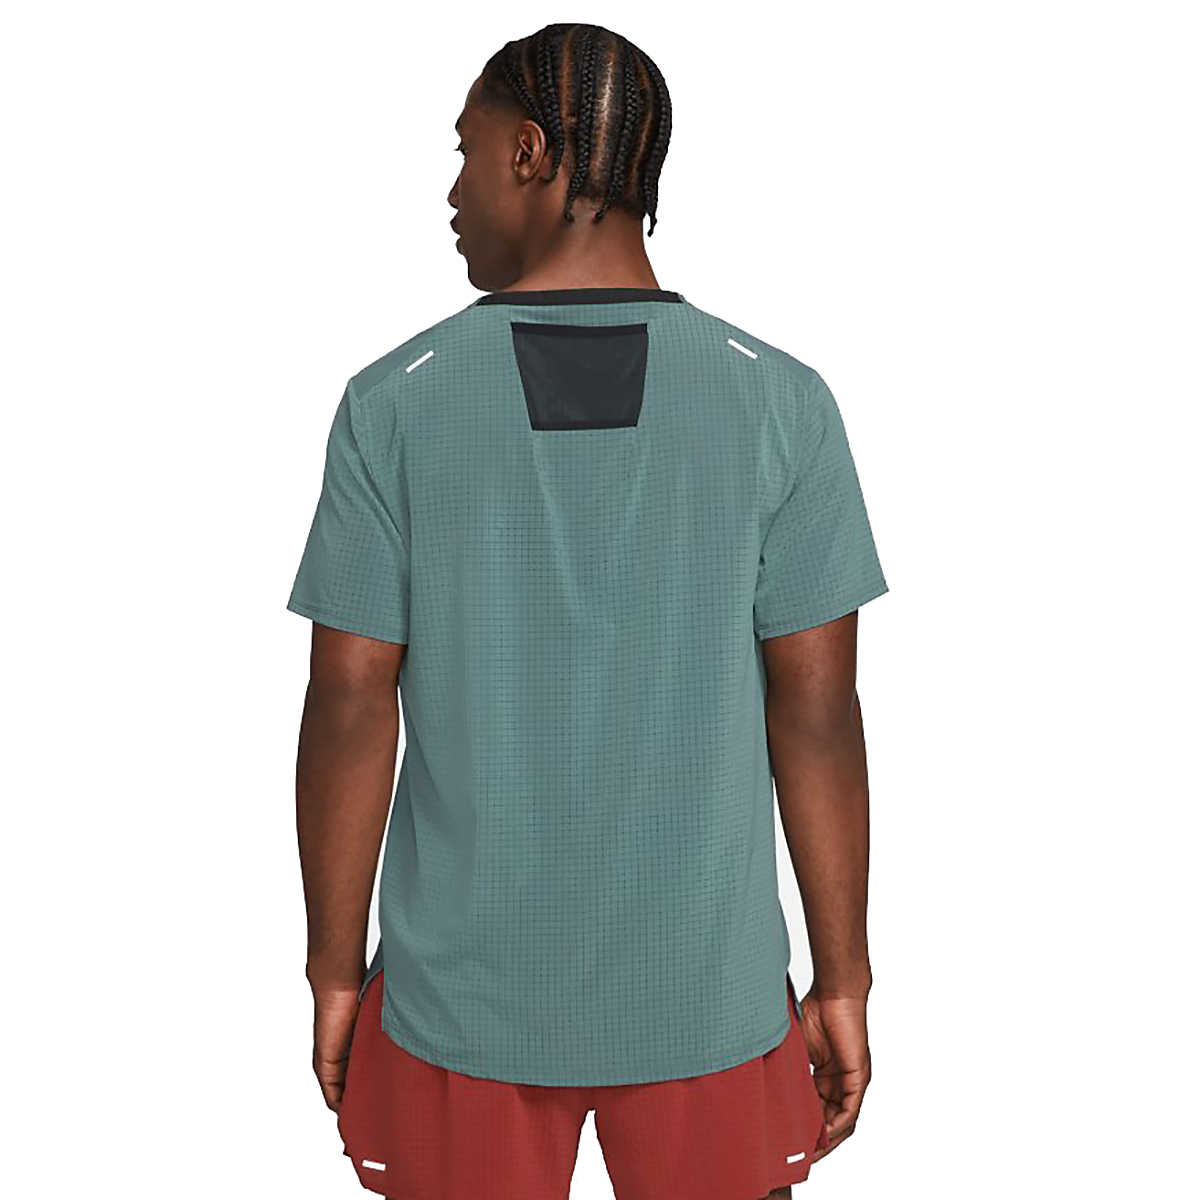 Men's Nike Dri-FIT Rise 365 Short-Sleeve Trail Running Top - Color: Hasta/Reflective Silver - Size: S, Hasta/Reflective Silver, large, image 2